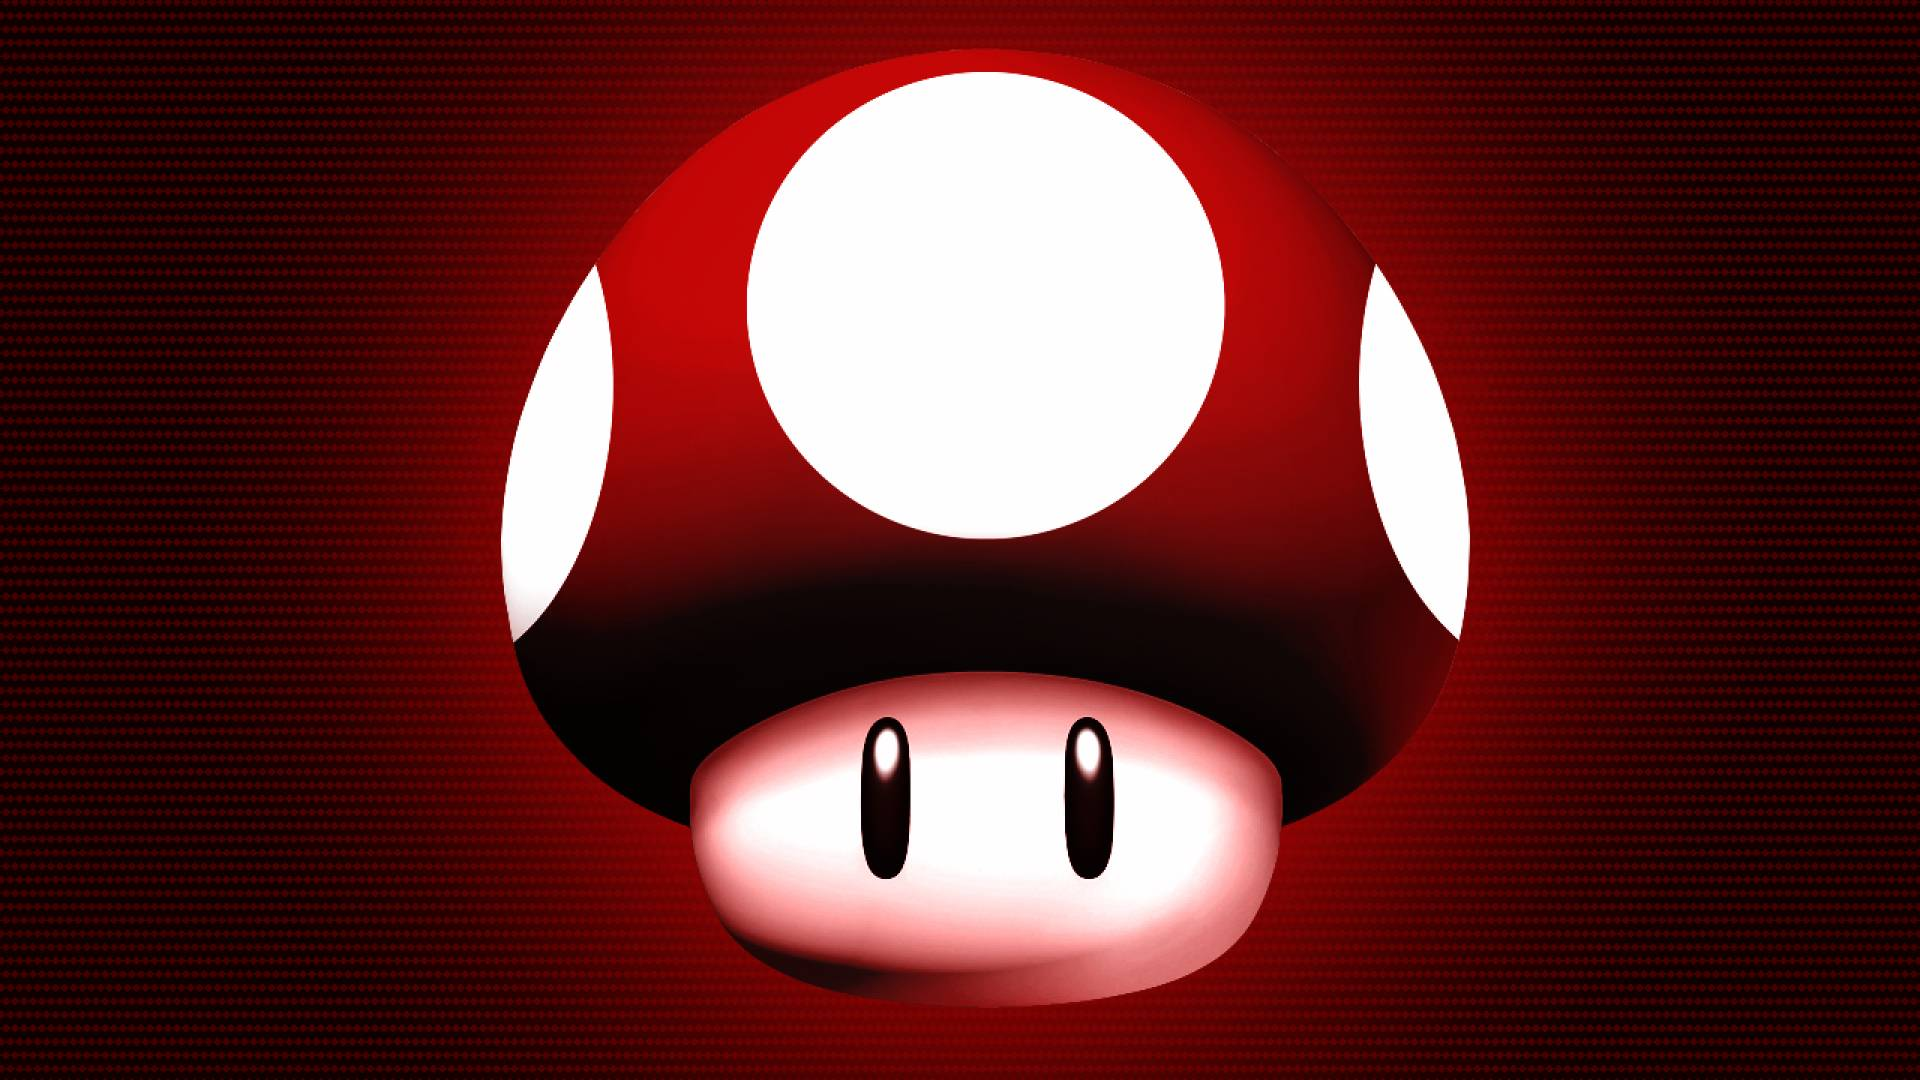 Red Mario Mushroom Wallpaper